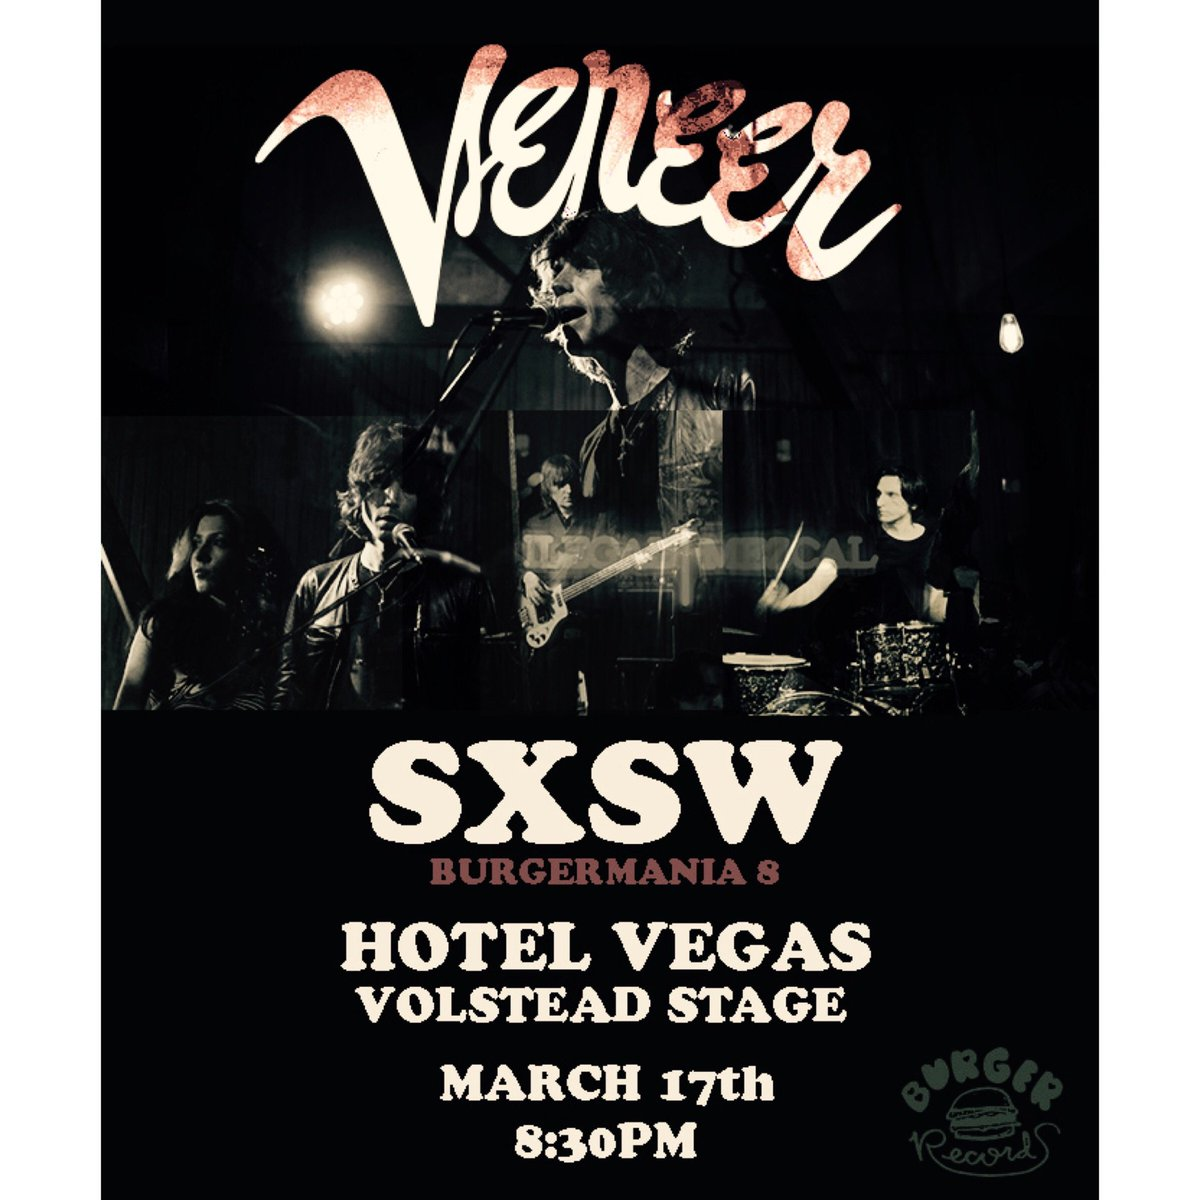 I'm playing w/ #Veneer, this Sun. night, 8:30, p.m. on the #Burgermania/#Volstead stage, @ the South by South West (SxSW) festival!  #southbysouthwest  #southbysouthwestmusicfestival #burgerrecords  #hotelvegas  #austin  #texas  #austintexas  https://www.facebook.com/events/615911158849297/ …pic.twitter.com/VkDQ1ll9Q1